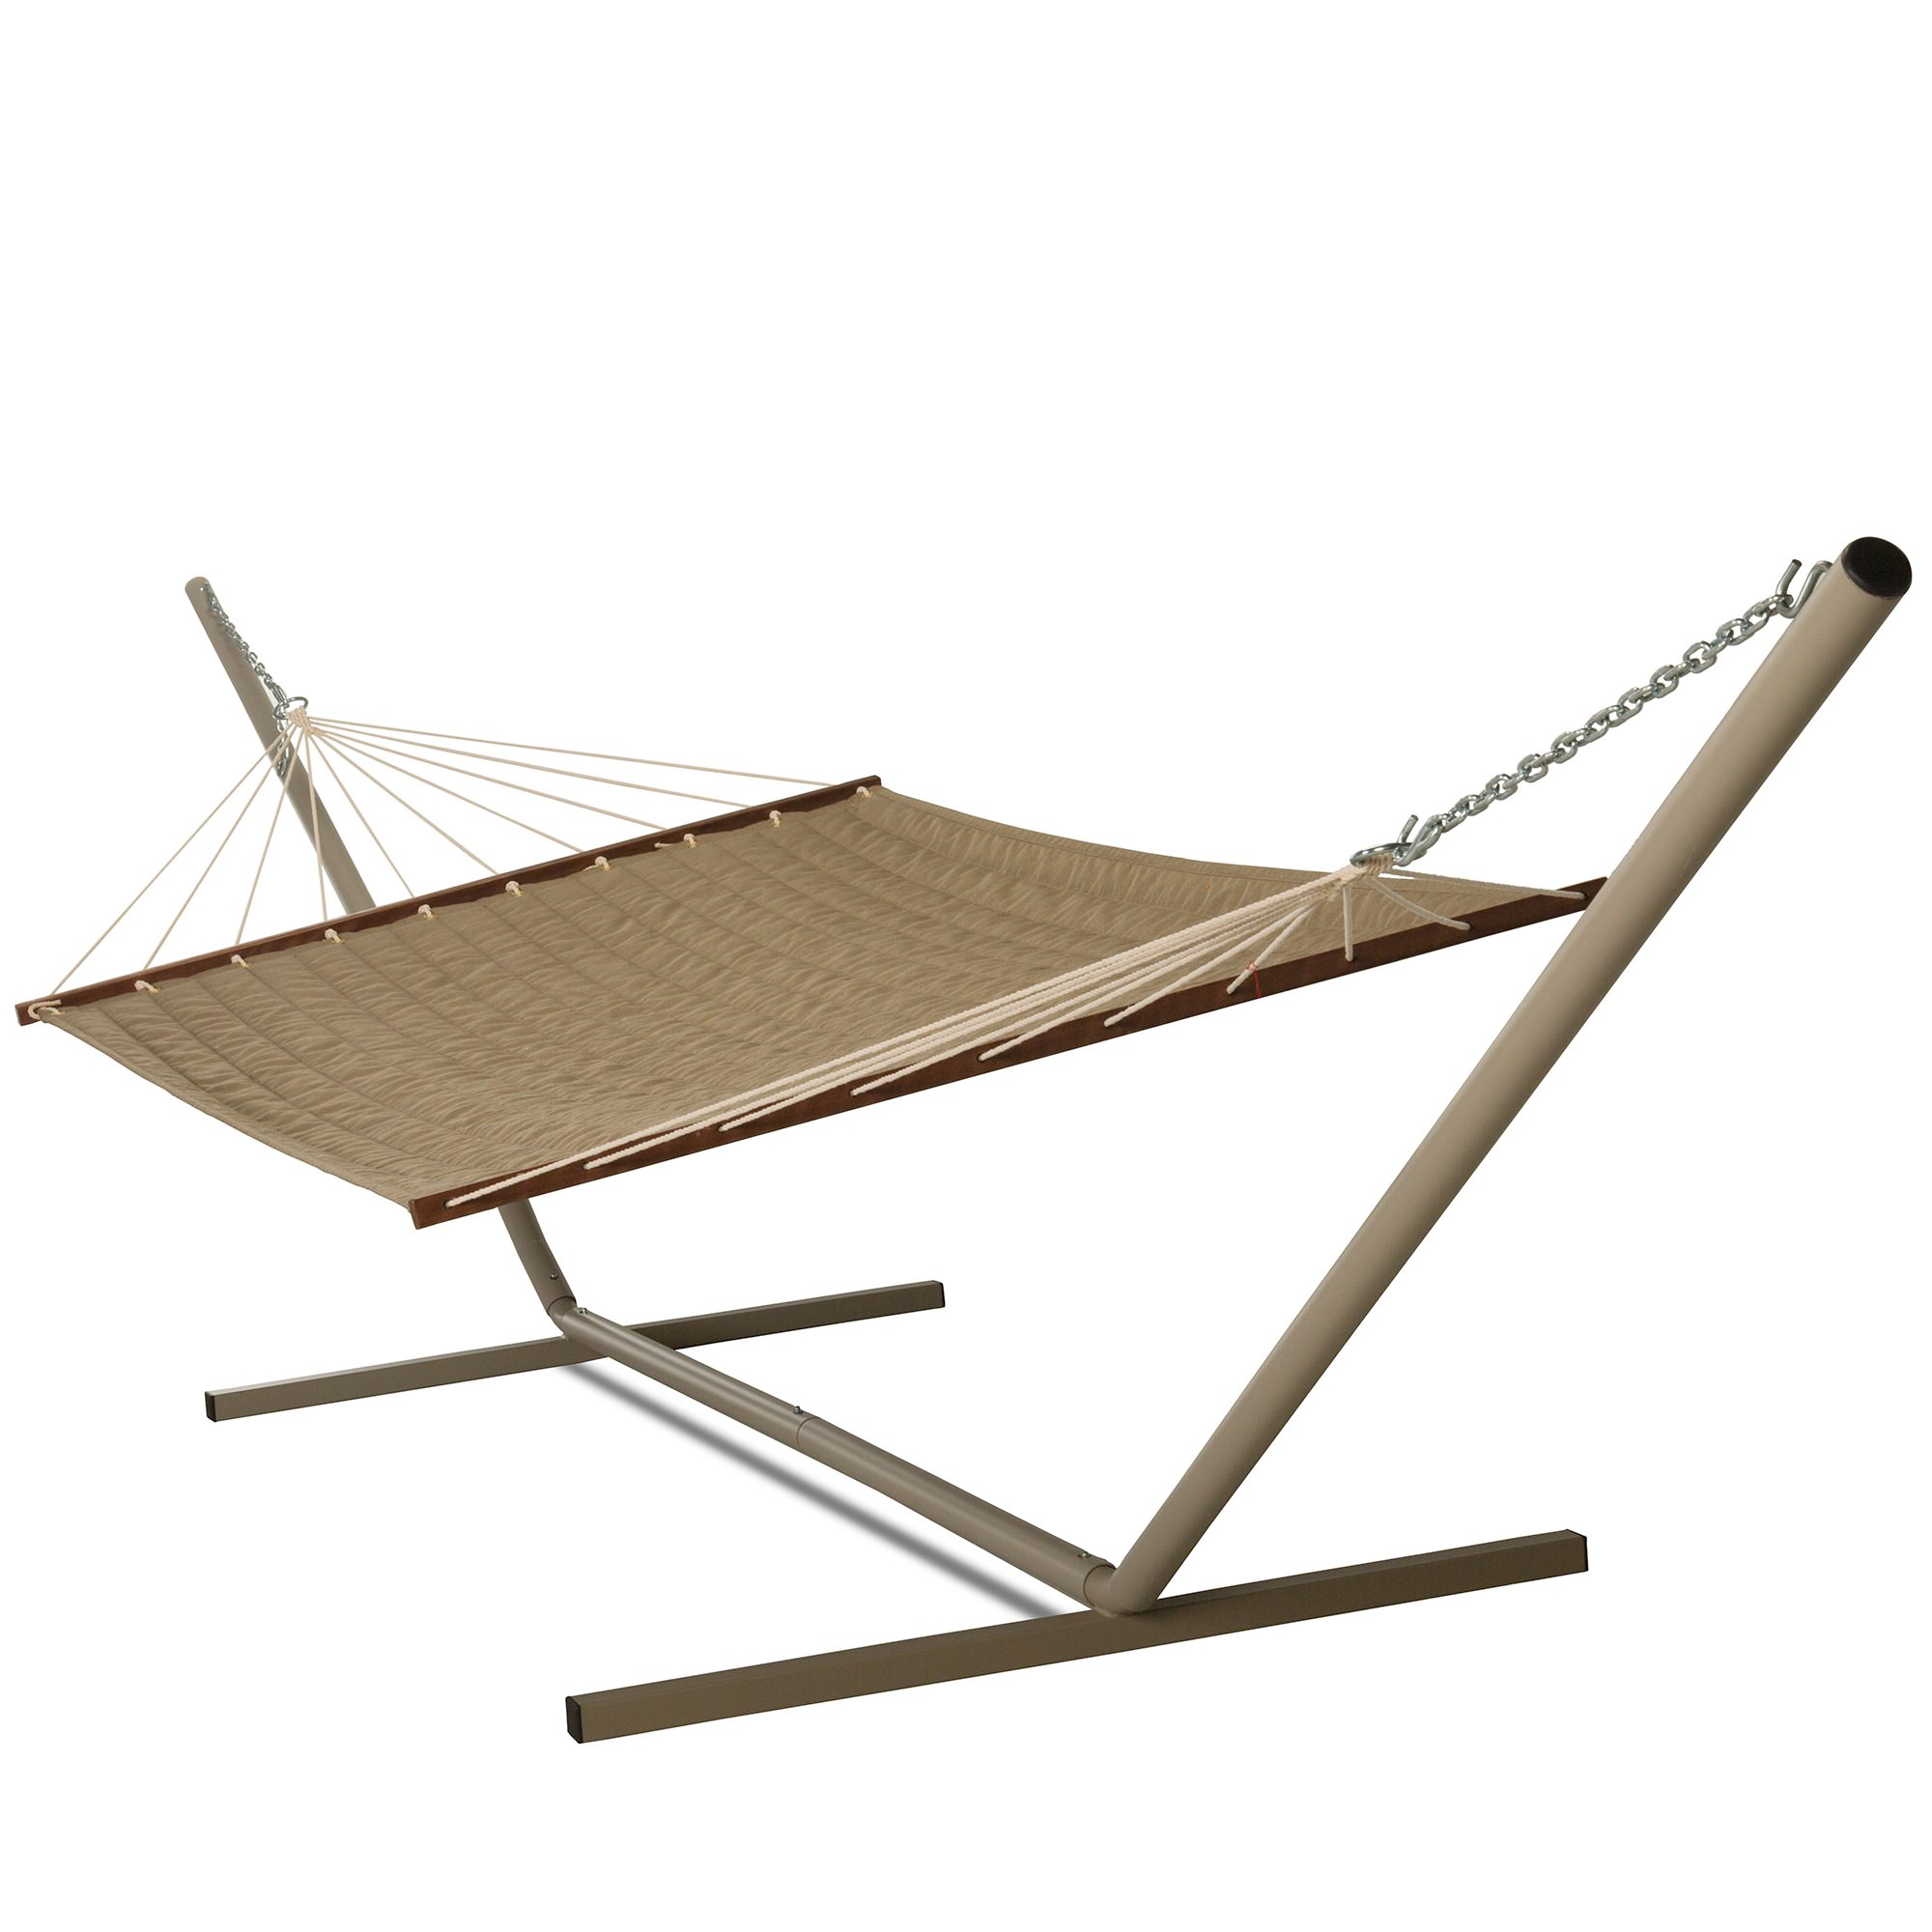 diy wooden made stand newline chair with chairs plans teak hammock hardwood in of stands hanging